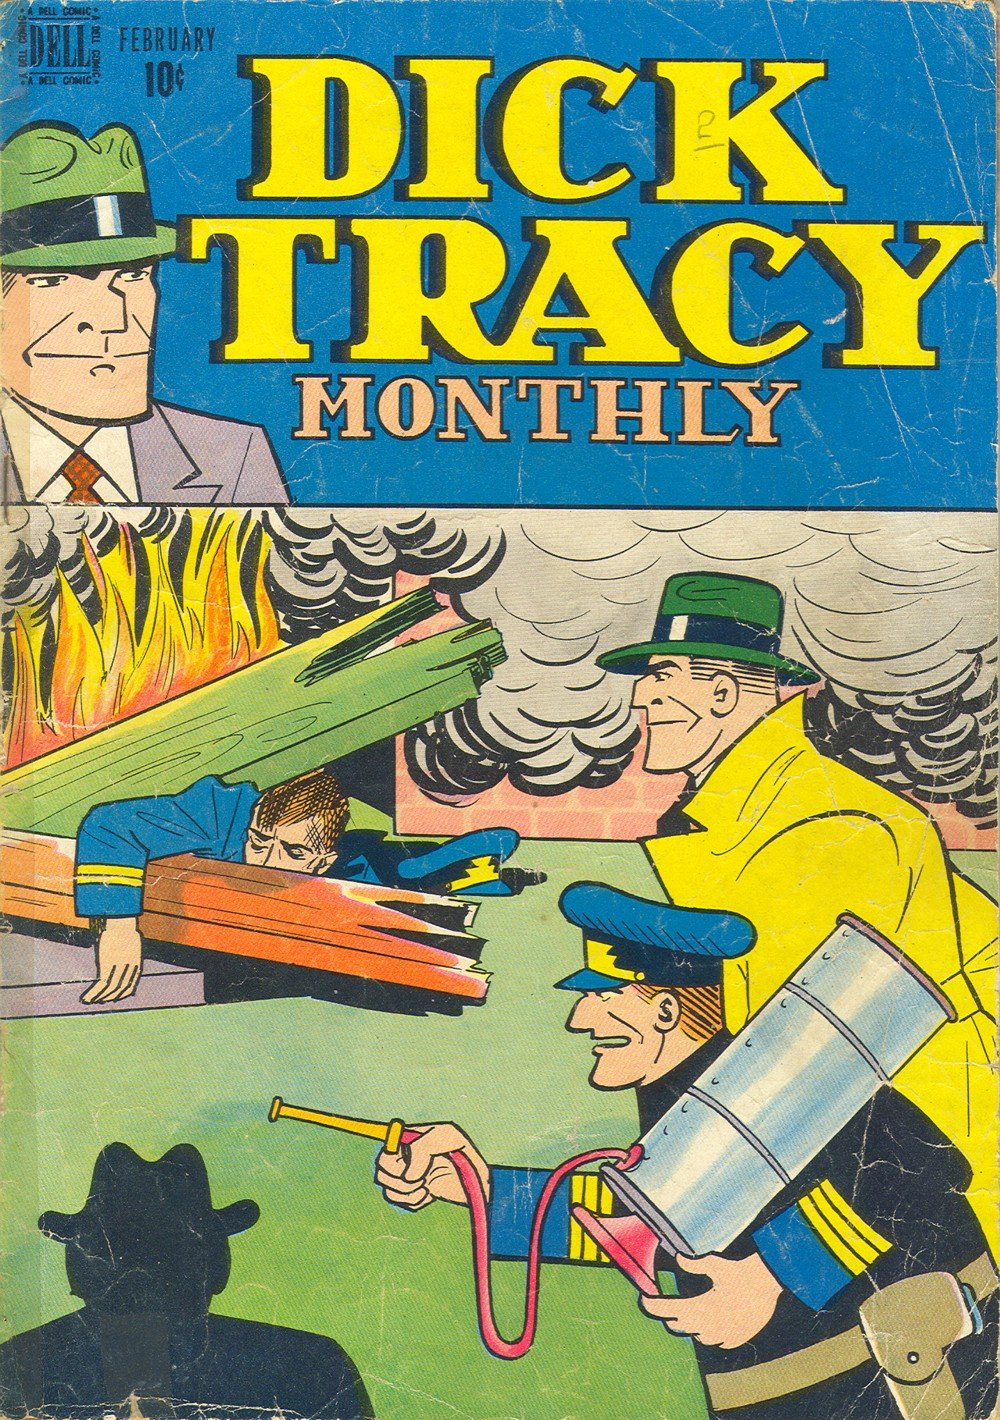 Dick Tracy- Monthy [Dell] V1 0002.jpg